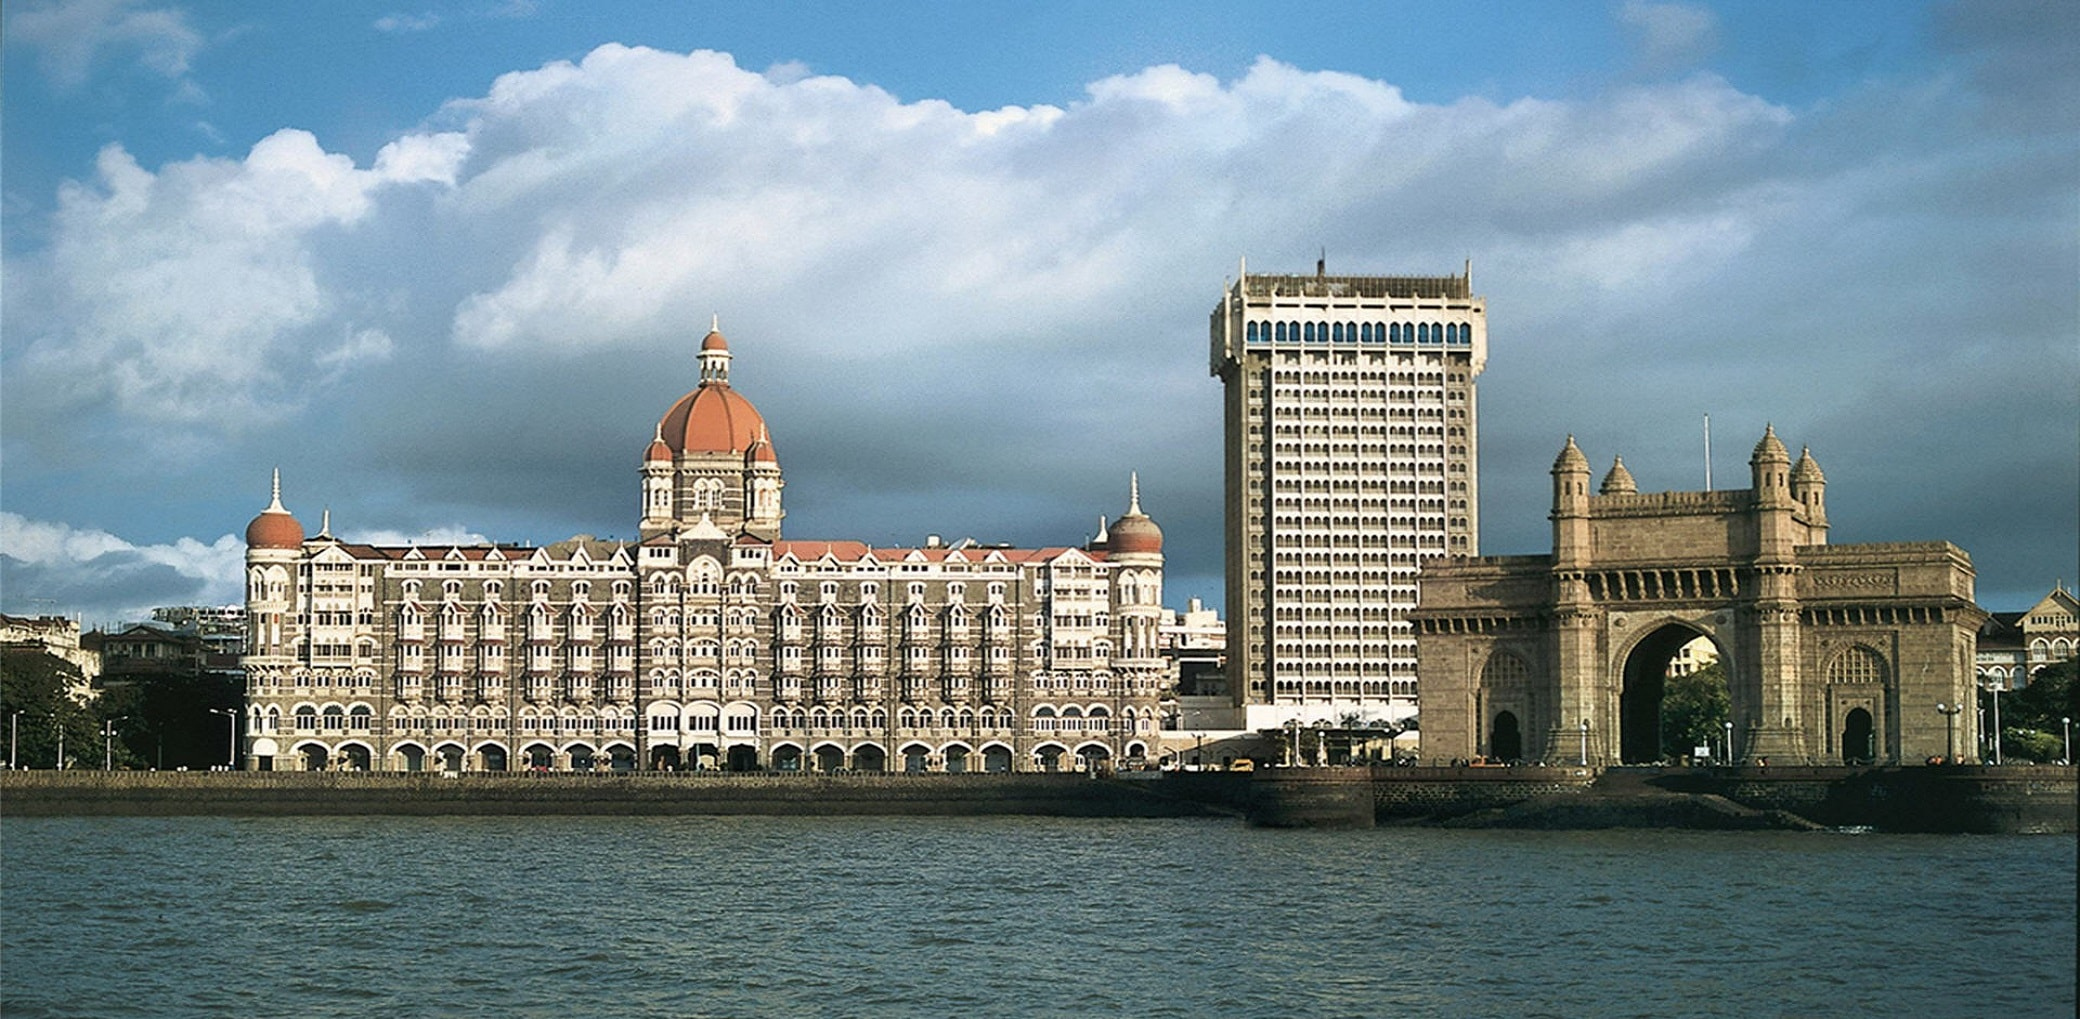 gateway of india mumbai taj hd wallpaper min   OSR Vacation 2080x1019